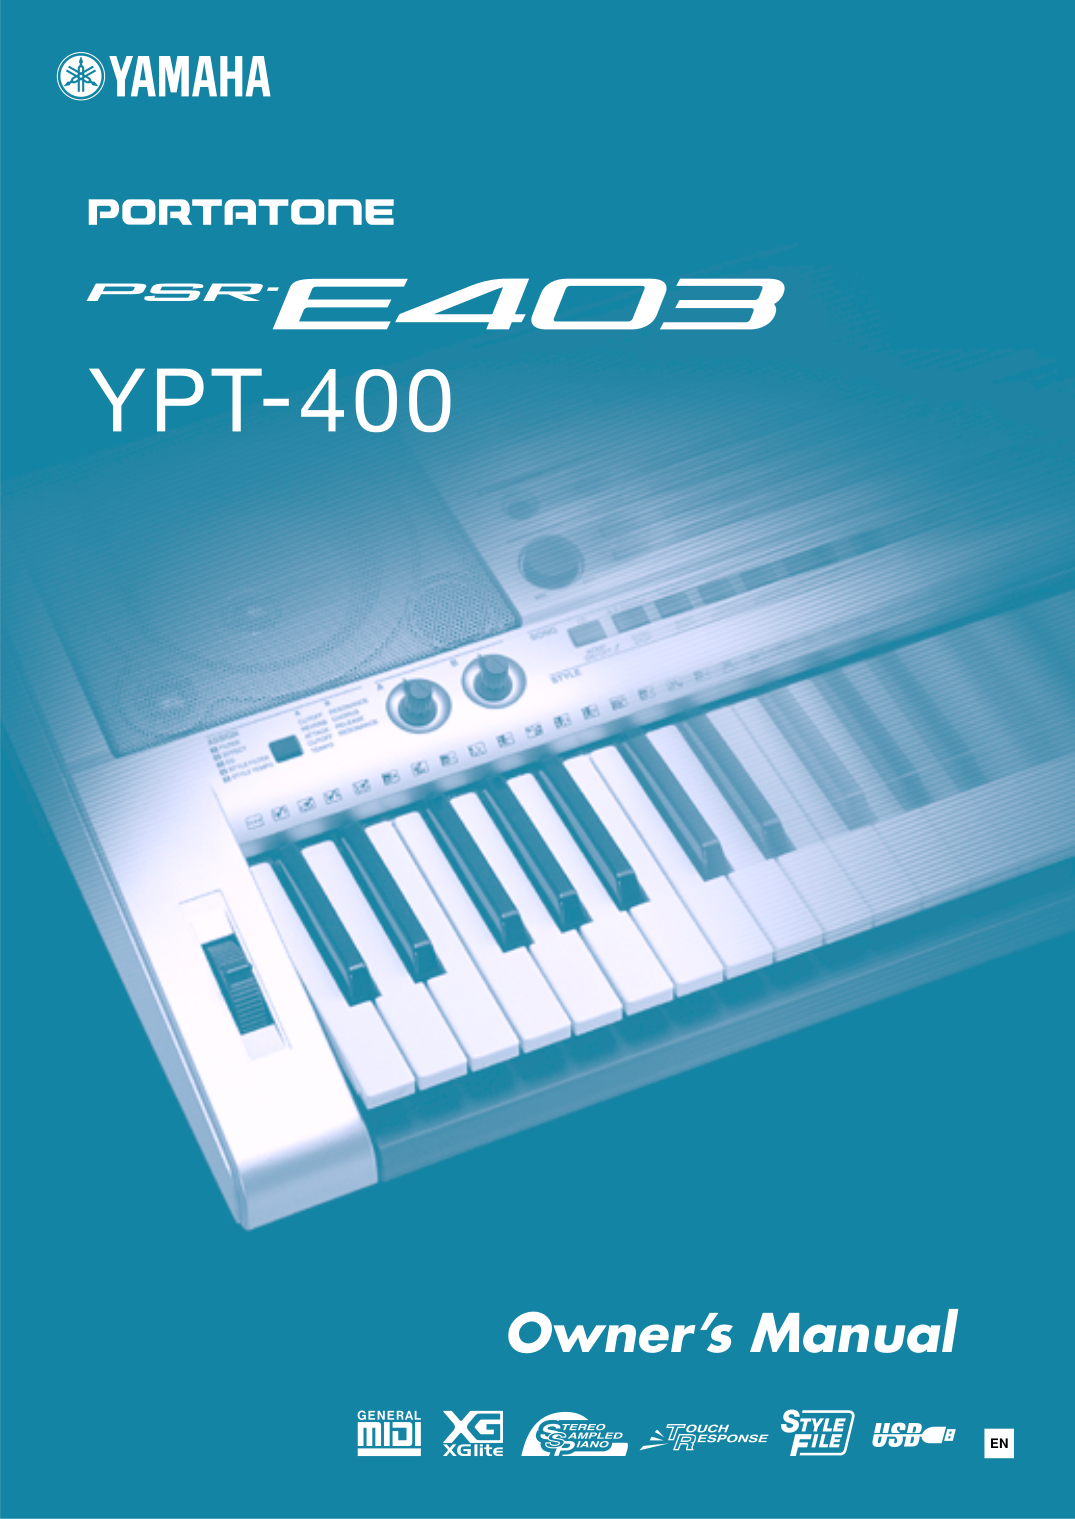 Yamaha portatone psr-e403 owner's manual pdf download.